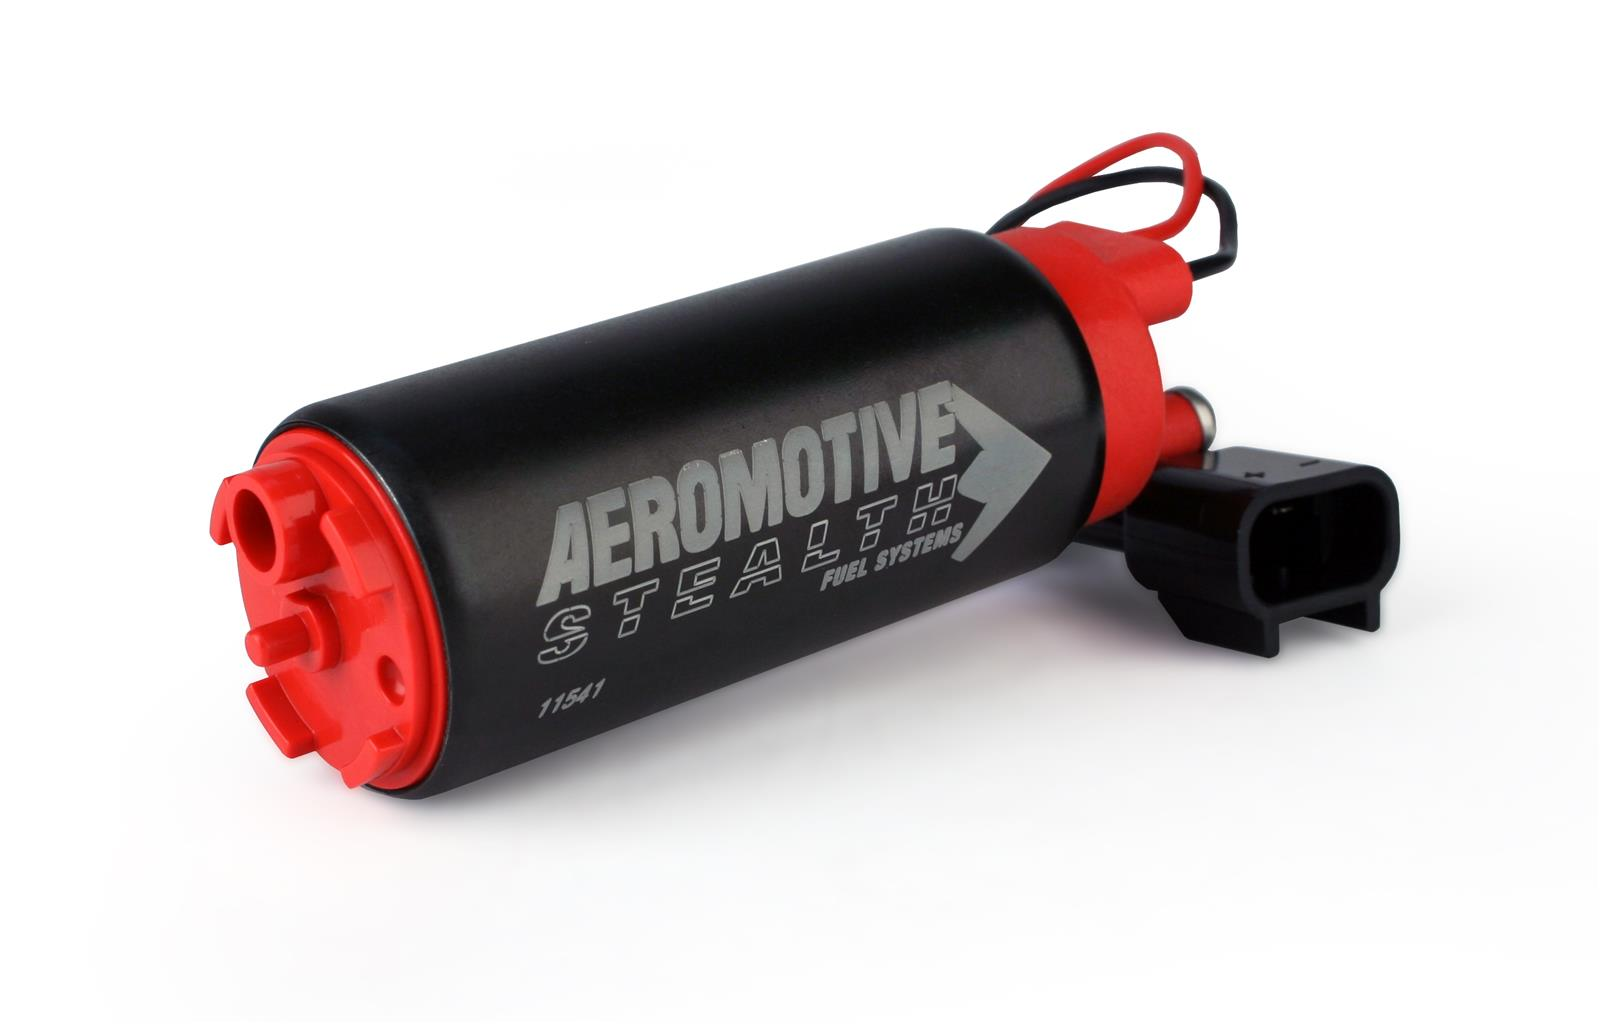 Aeromotive 11541 Stealth 340lph Electric Fuel Pump Corner3 Motorsports Filter